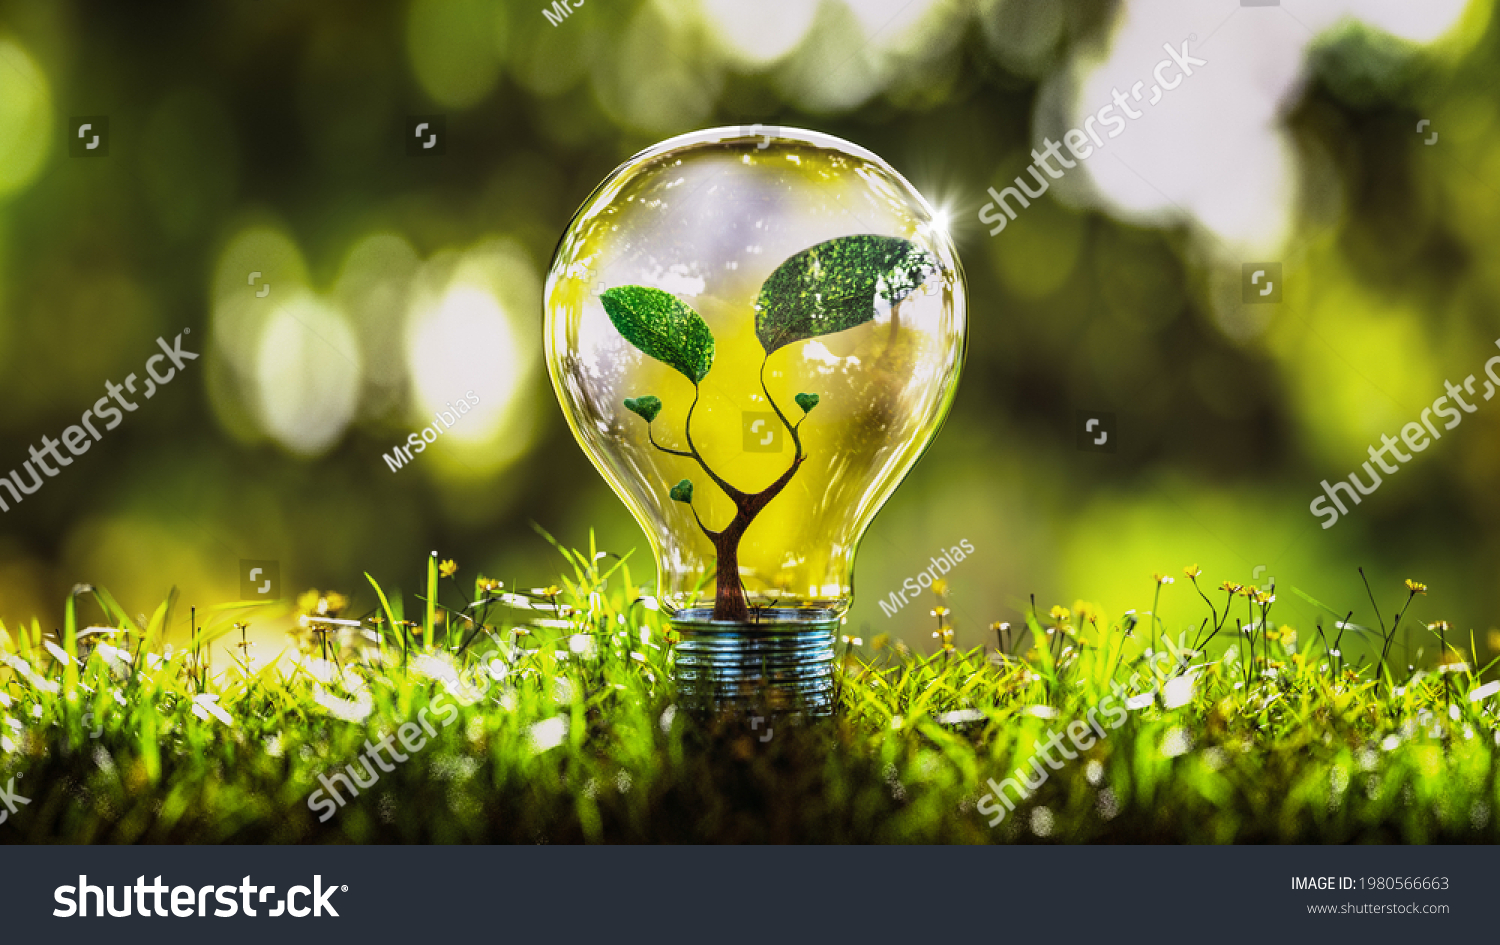 3d rendering of a light bulb with plant inside